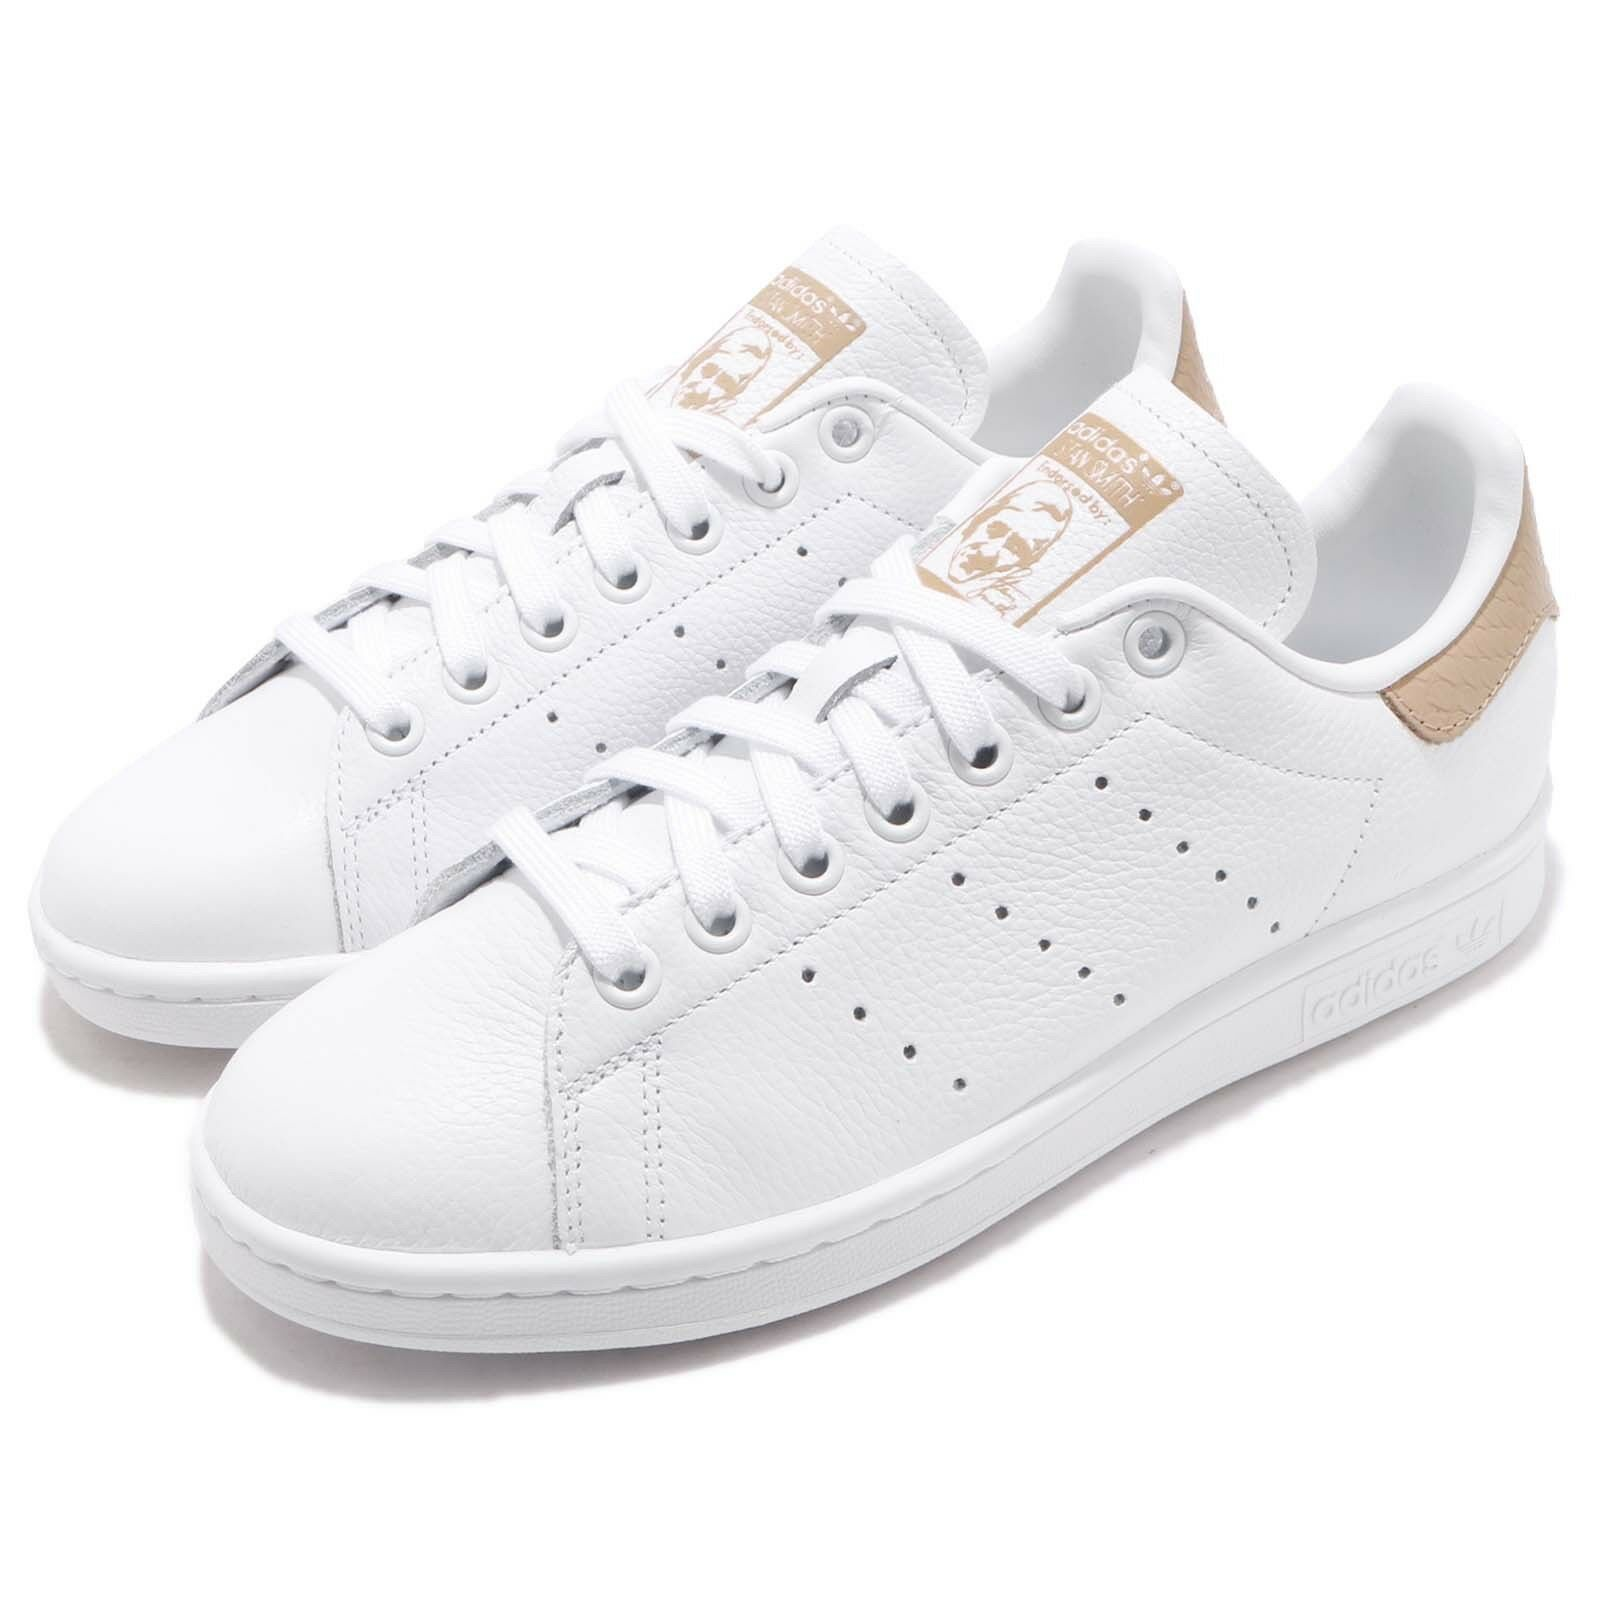 Adidas Adidas Adidas Originals Stan Smith Low Top Uomo Donna Classic  Shoes Pick 1 3ea570